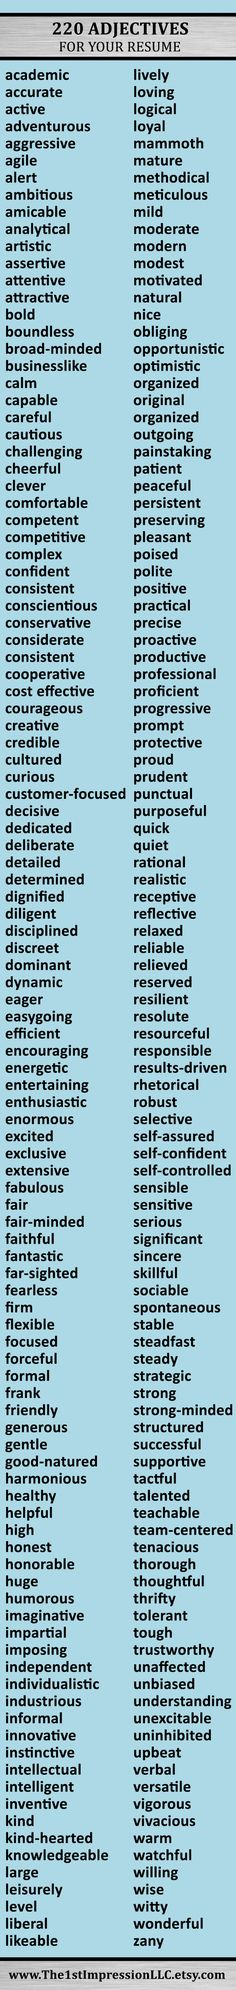 resumeansurc/resume-skills-list/ Resume Skills List - resume adjectives list